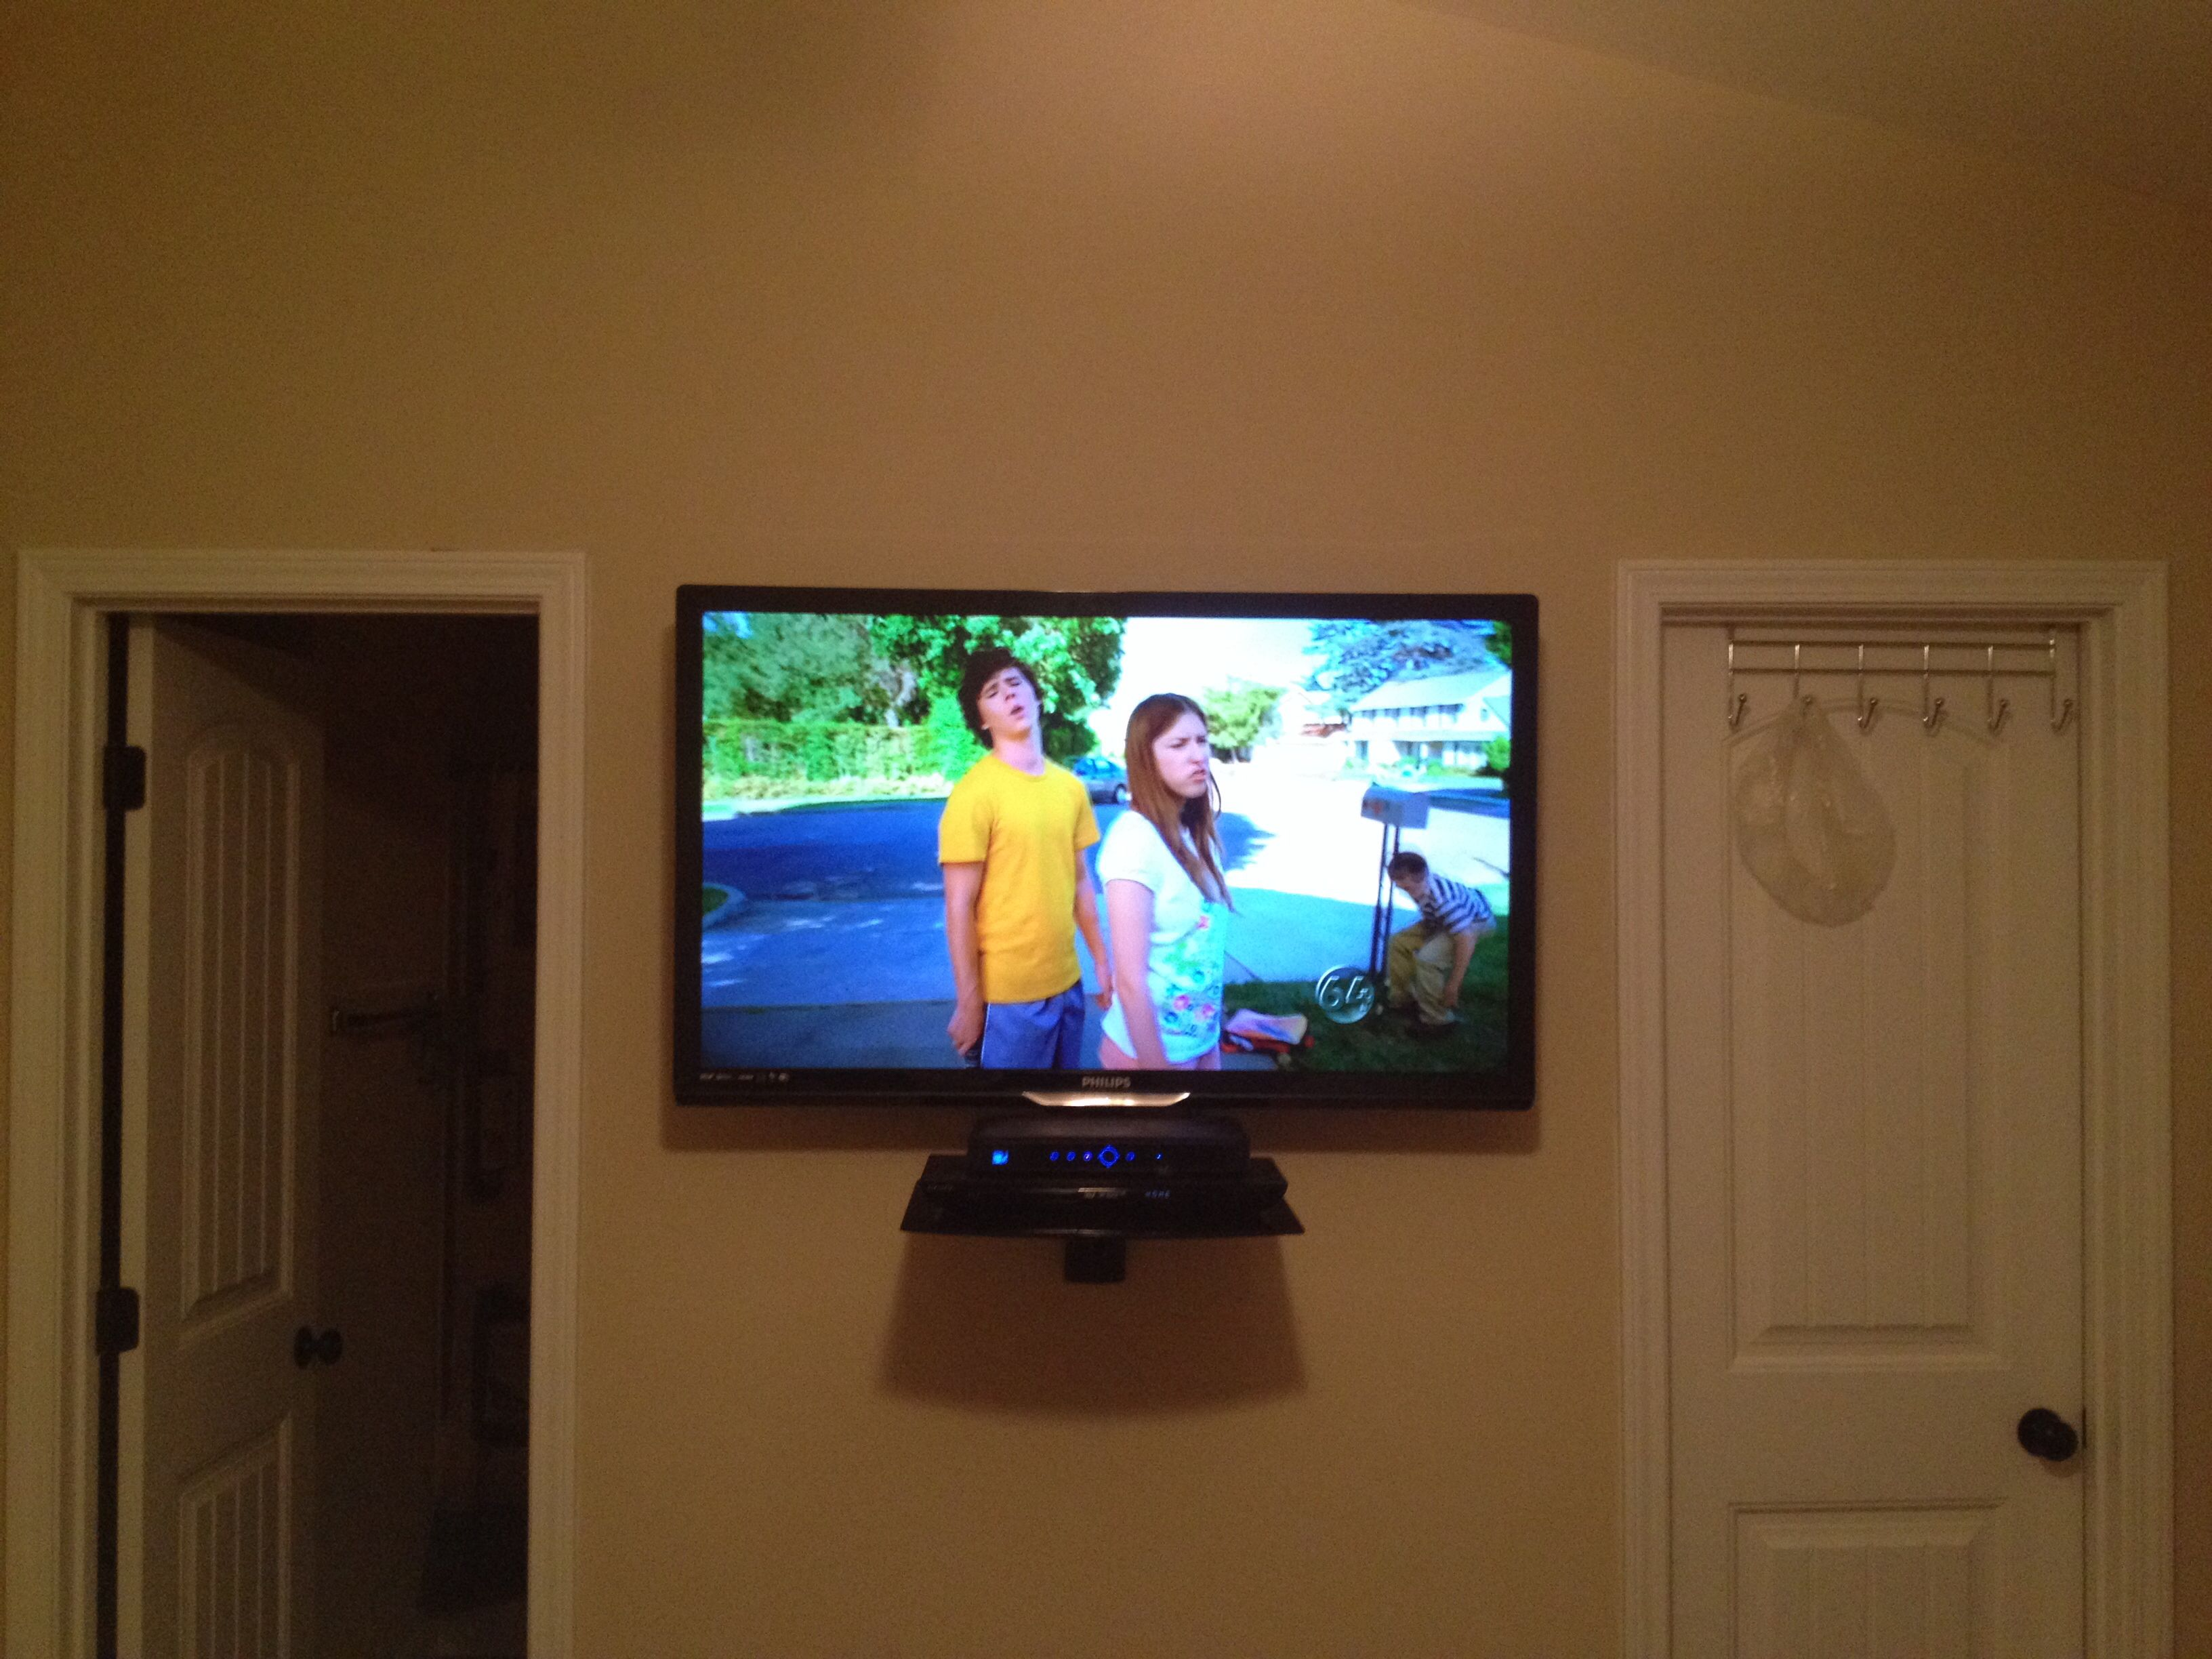 Led Tv Wall Mount Installation With Floating Glass Shelf For Cable